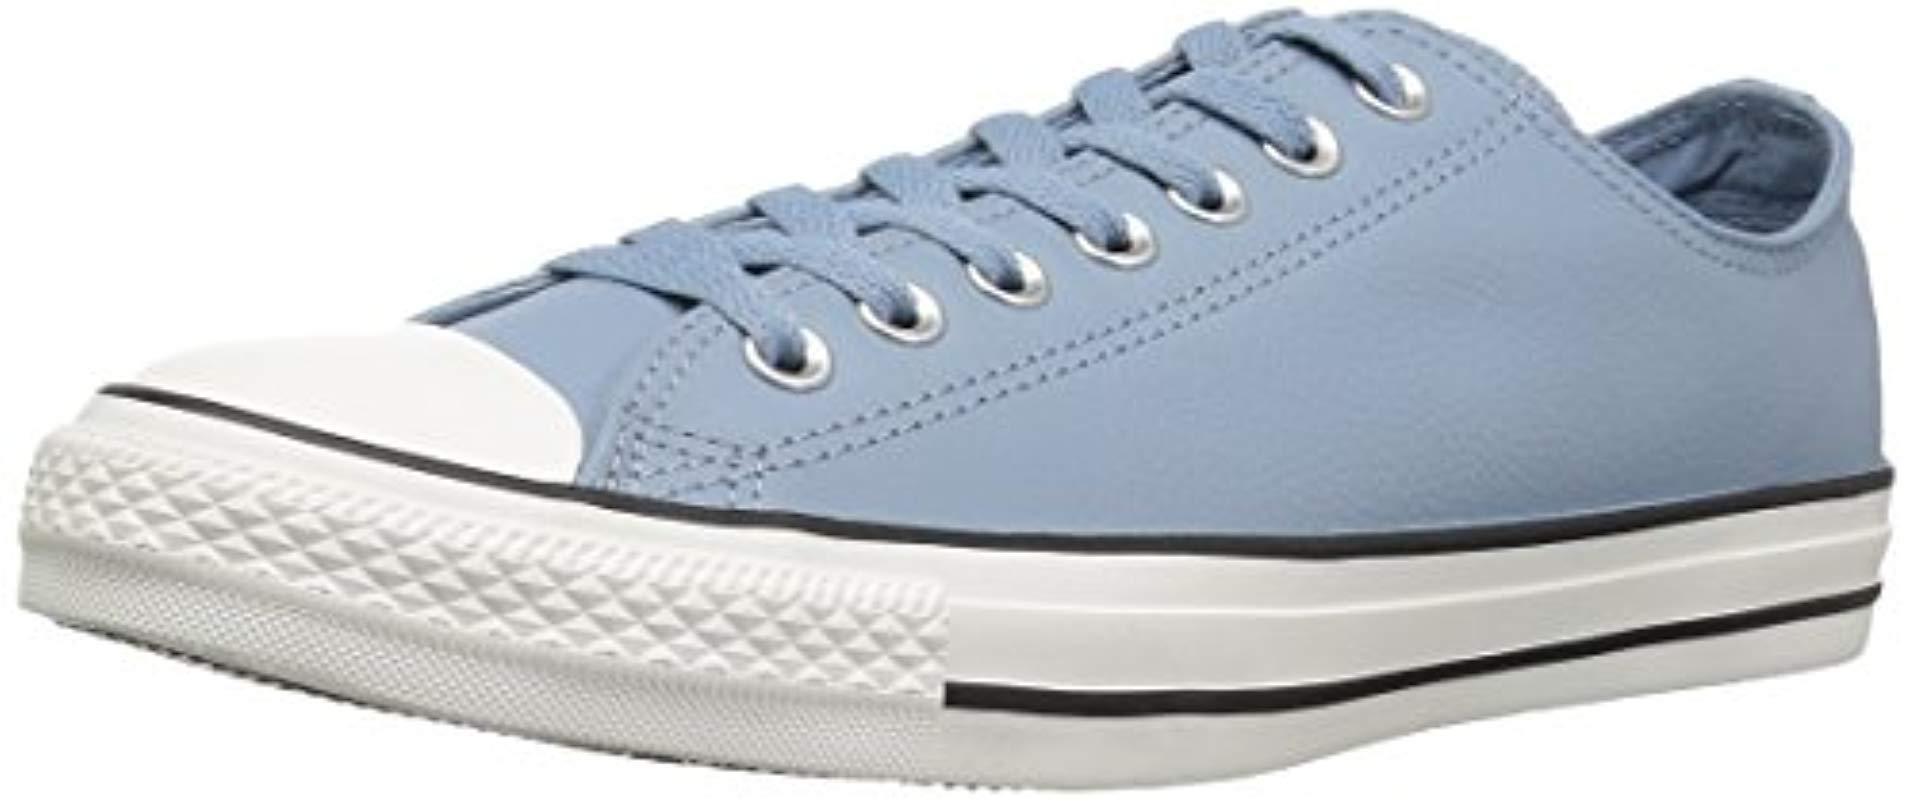 c5588f291bab Converse. Women s Blue Chuck Taylor All Star Tumbled Leather Low Top Sneaker